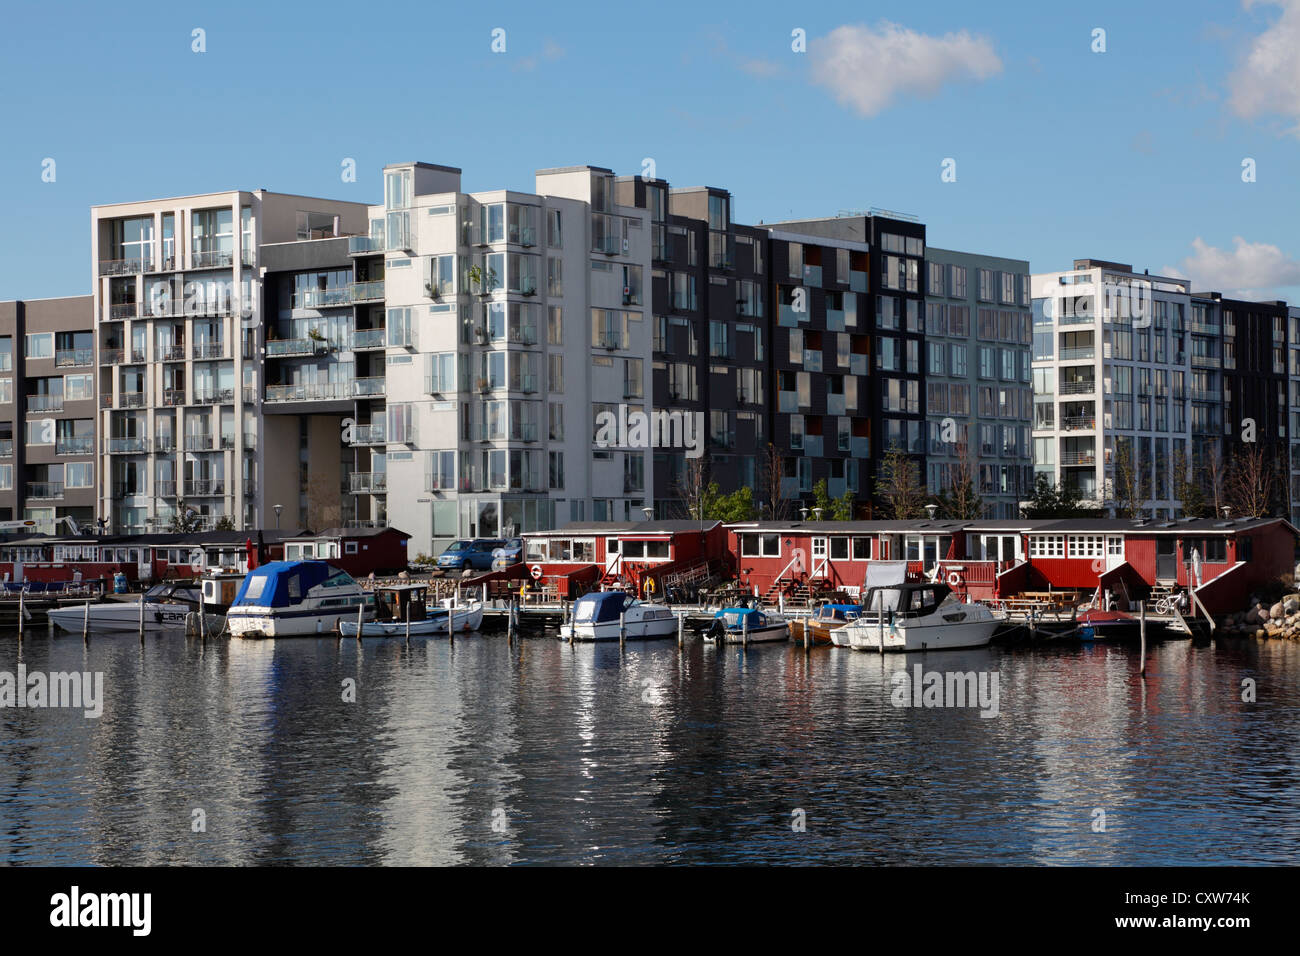 modern residential buildings with venice like canals between the stock photo royalty free image